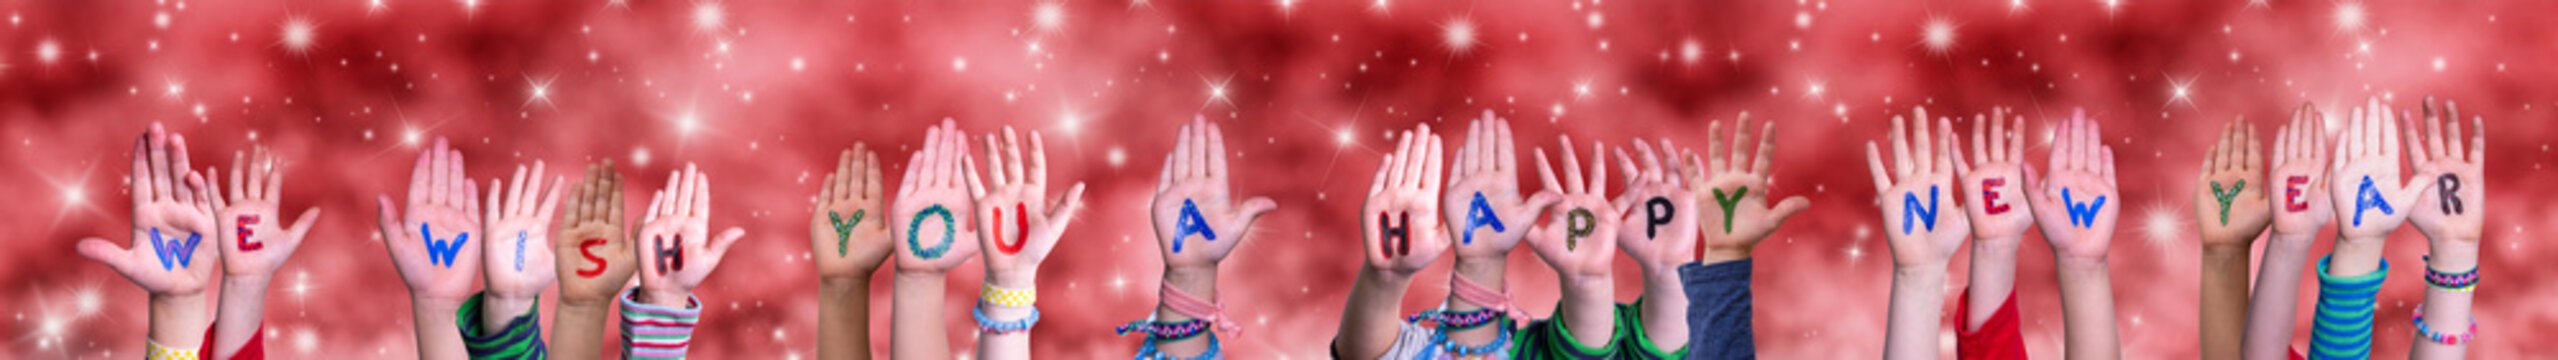 Children Hands Building Colorful English Word We Wish You A Happy New Year. Red Snowy Christmas Winter Background With Snowflakes And Sparkling Lights